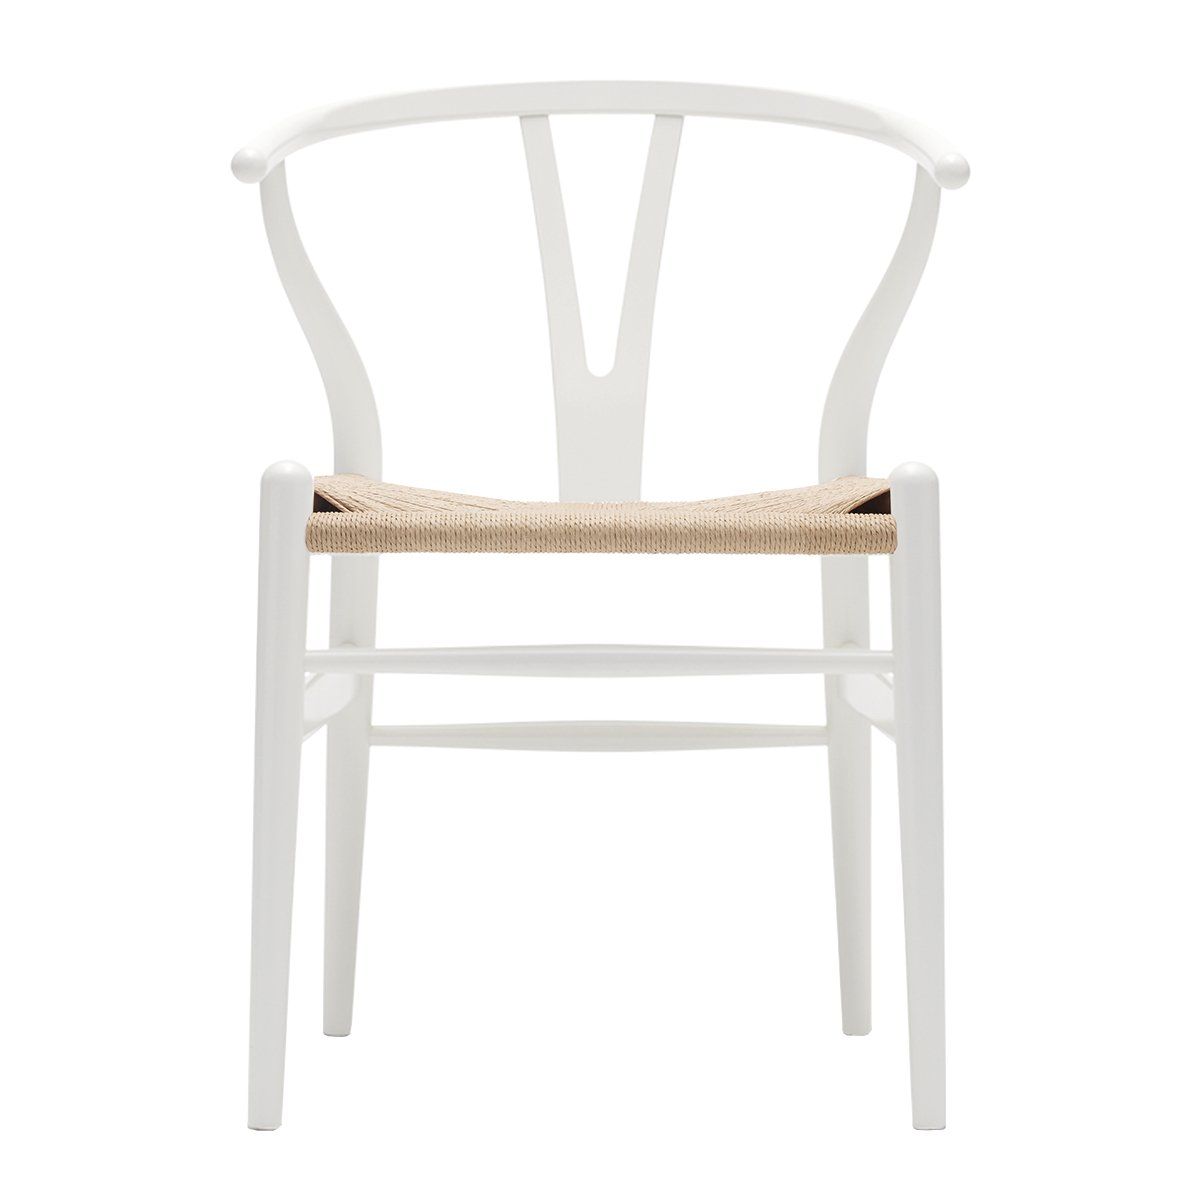 Carl Hansen Wishbone Chair NCS S0502-Y - Naturel